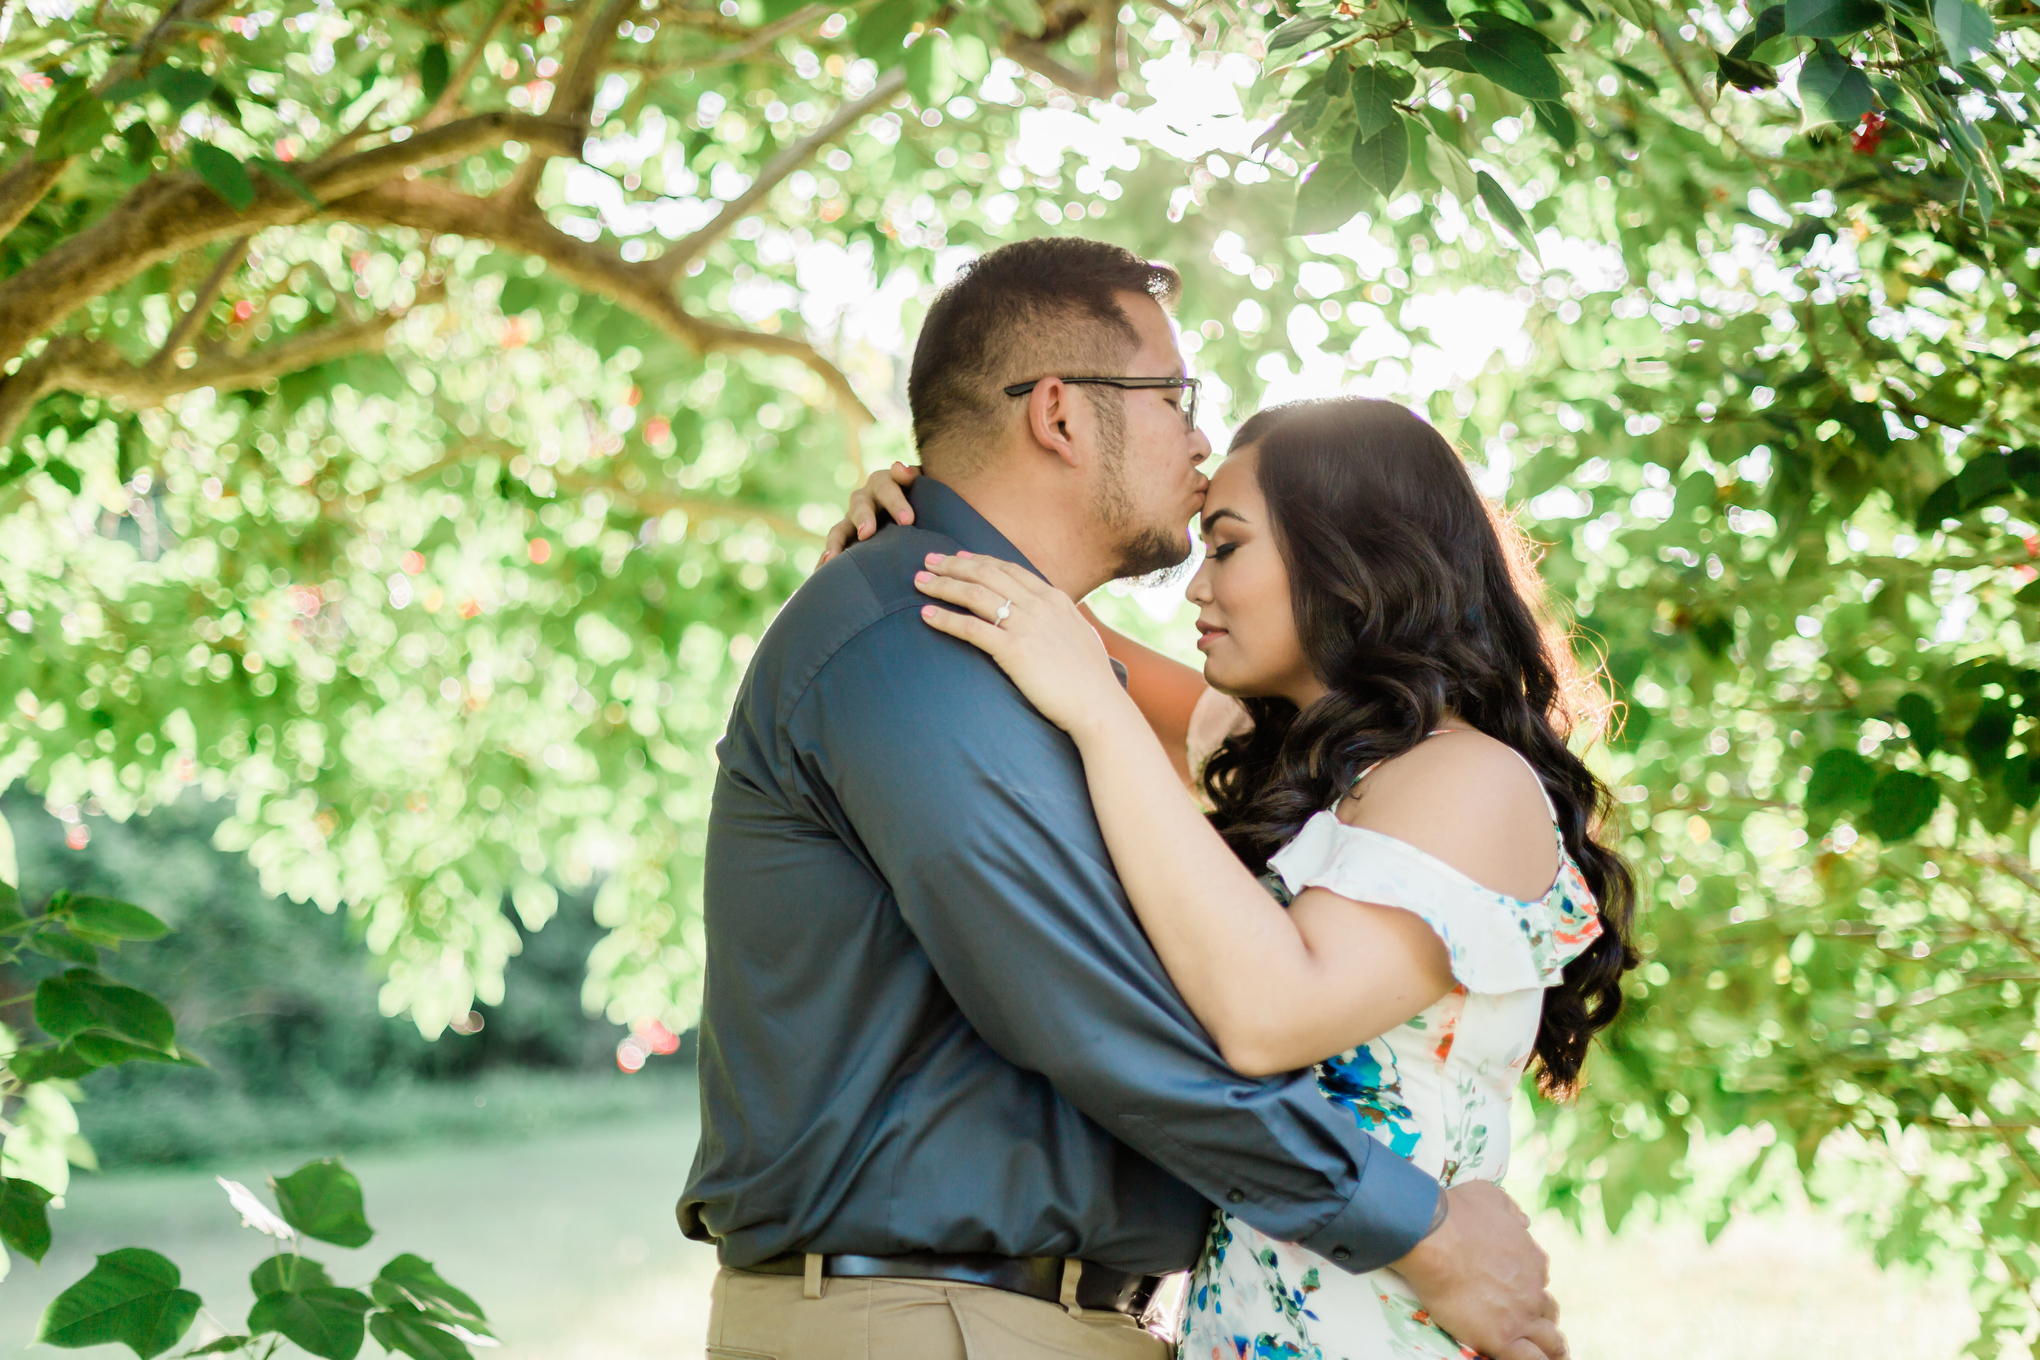 21PIXELS_Guam_Engagement_Photographer004.JPG